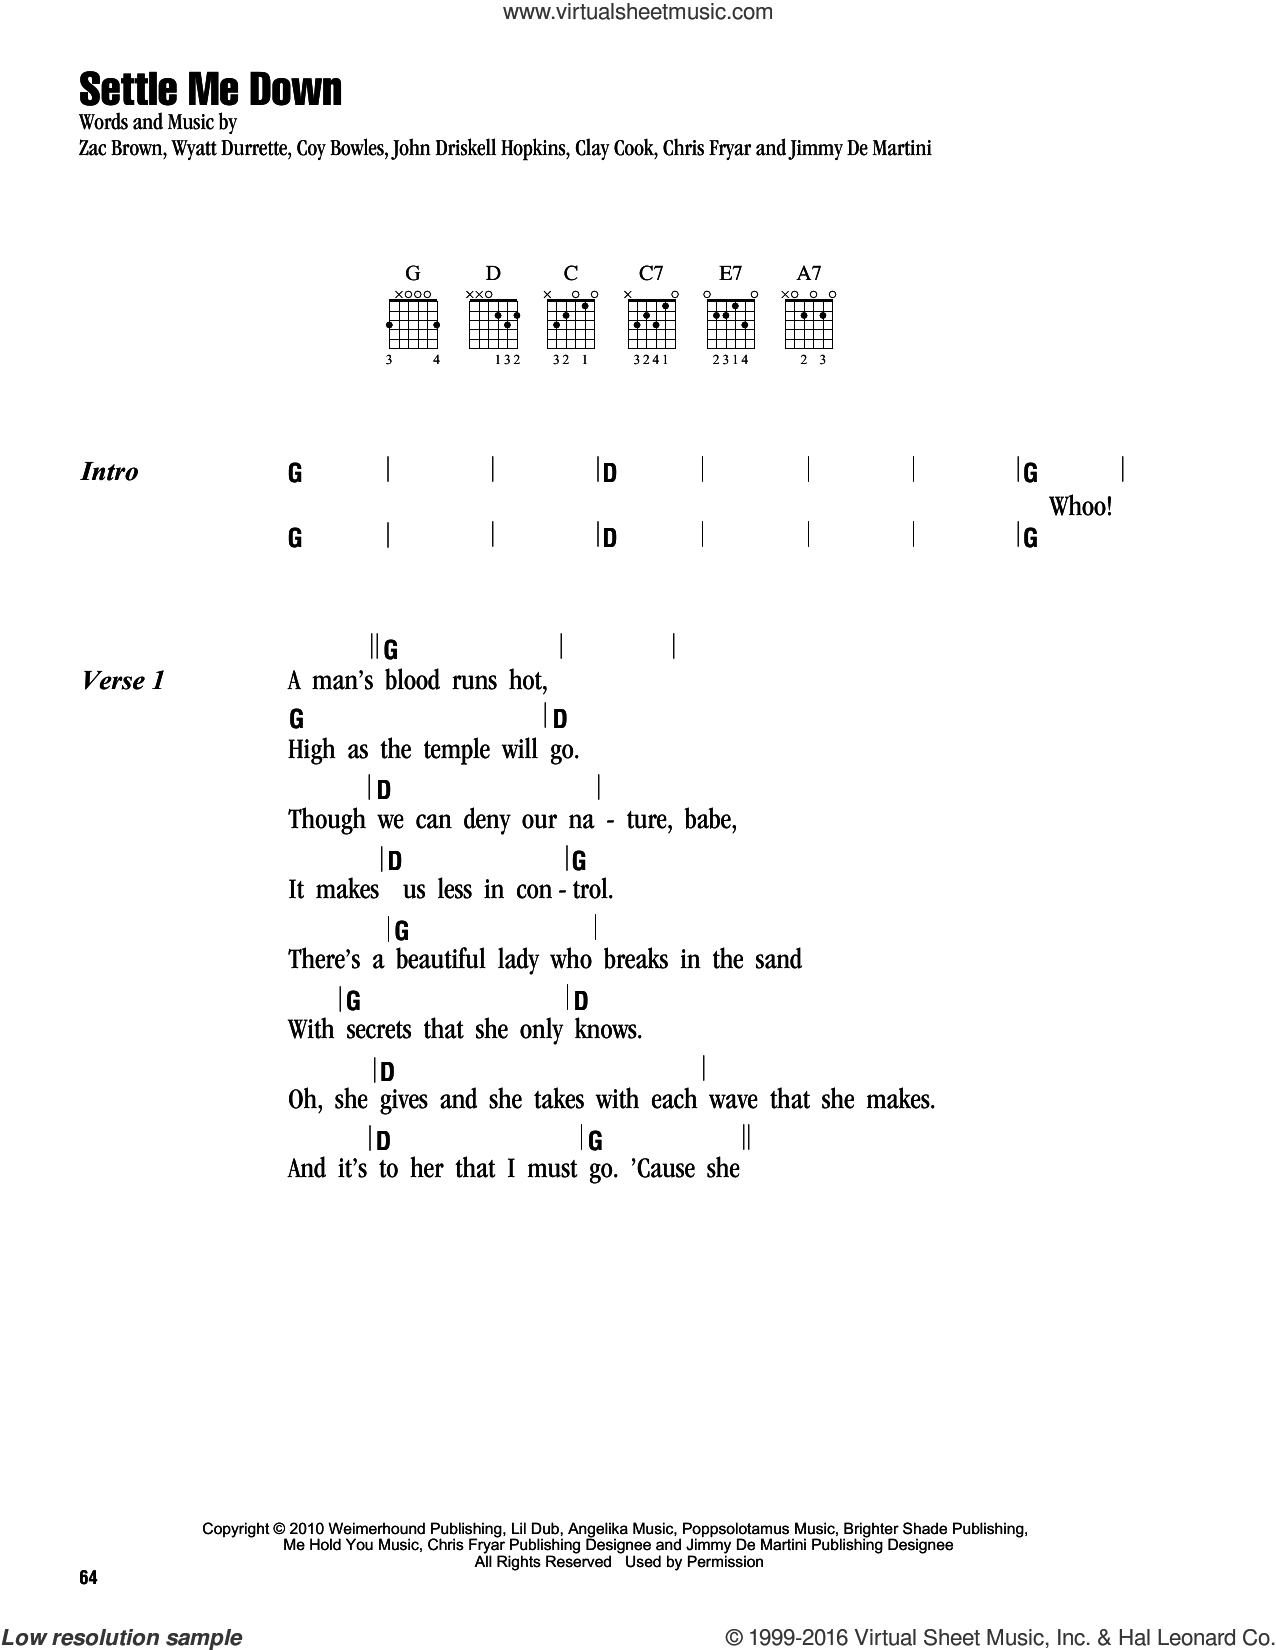 Settle Me Down sheet music for guitar (chords) by Zac Brown, Zac Brown Band, Clay Cook, John Driskell Hopkins and Wyatt Durrette. Score Image Preview.